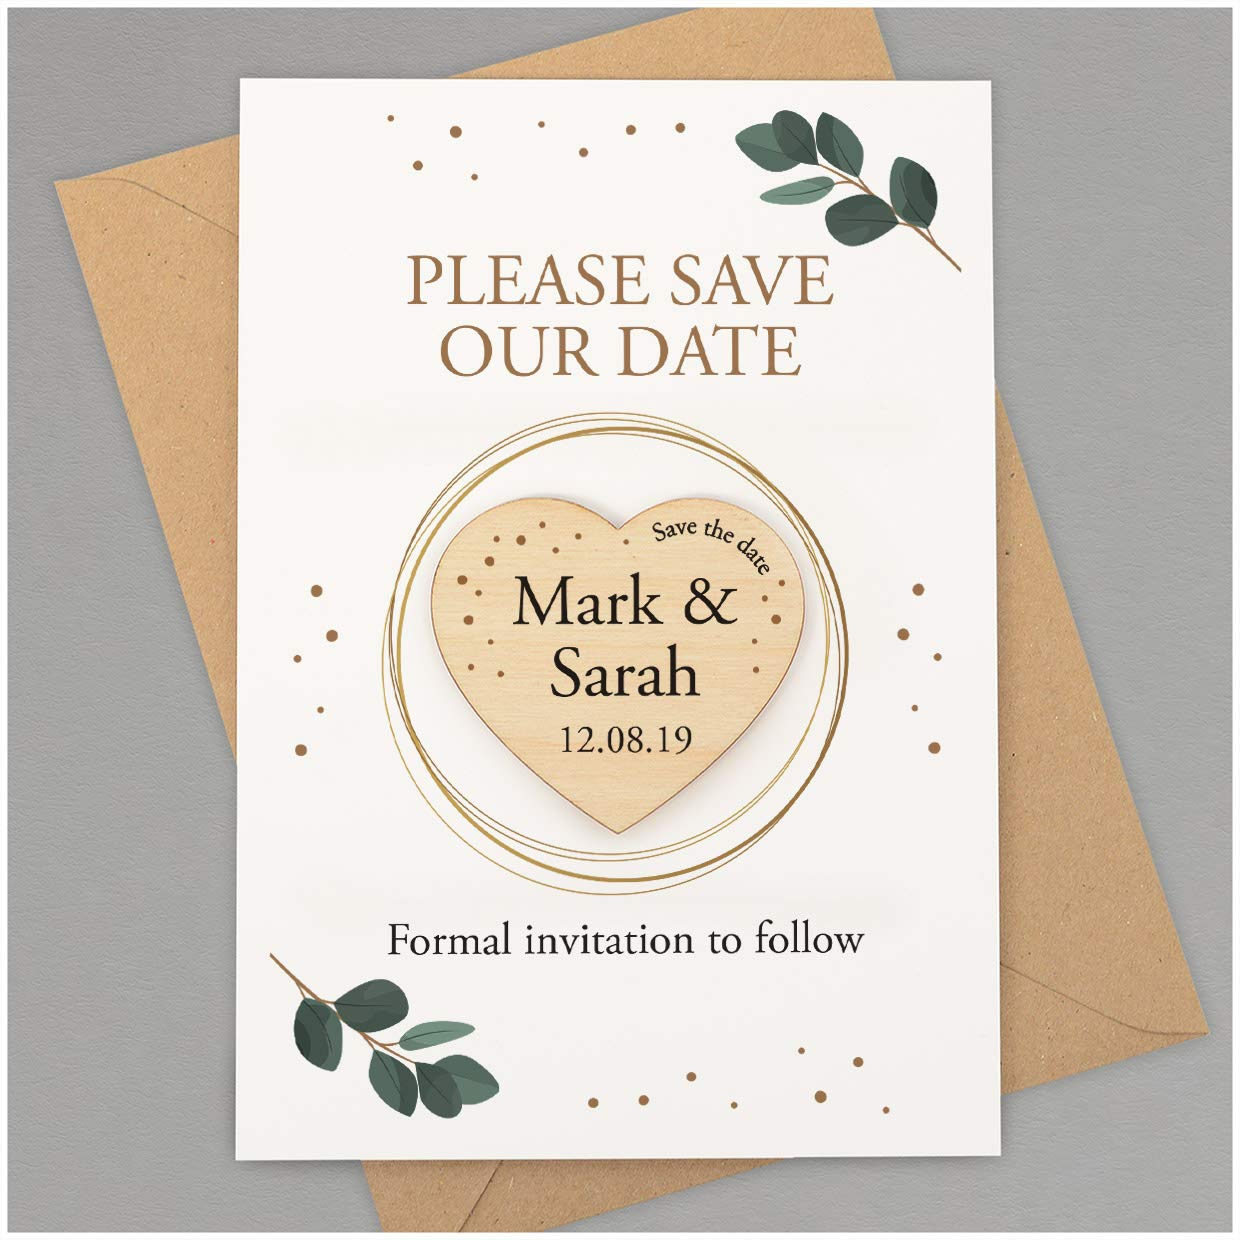 Personalised Eucalyptus Save The Date Magnets Rustic Wedding Save The Date Cards Envelopes Unique Wedding Save The Date Ideas Boho Floral Greenery Spring Summer Wedding Invitations Amazon Co Uk Handmade